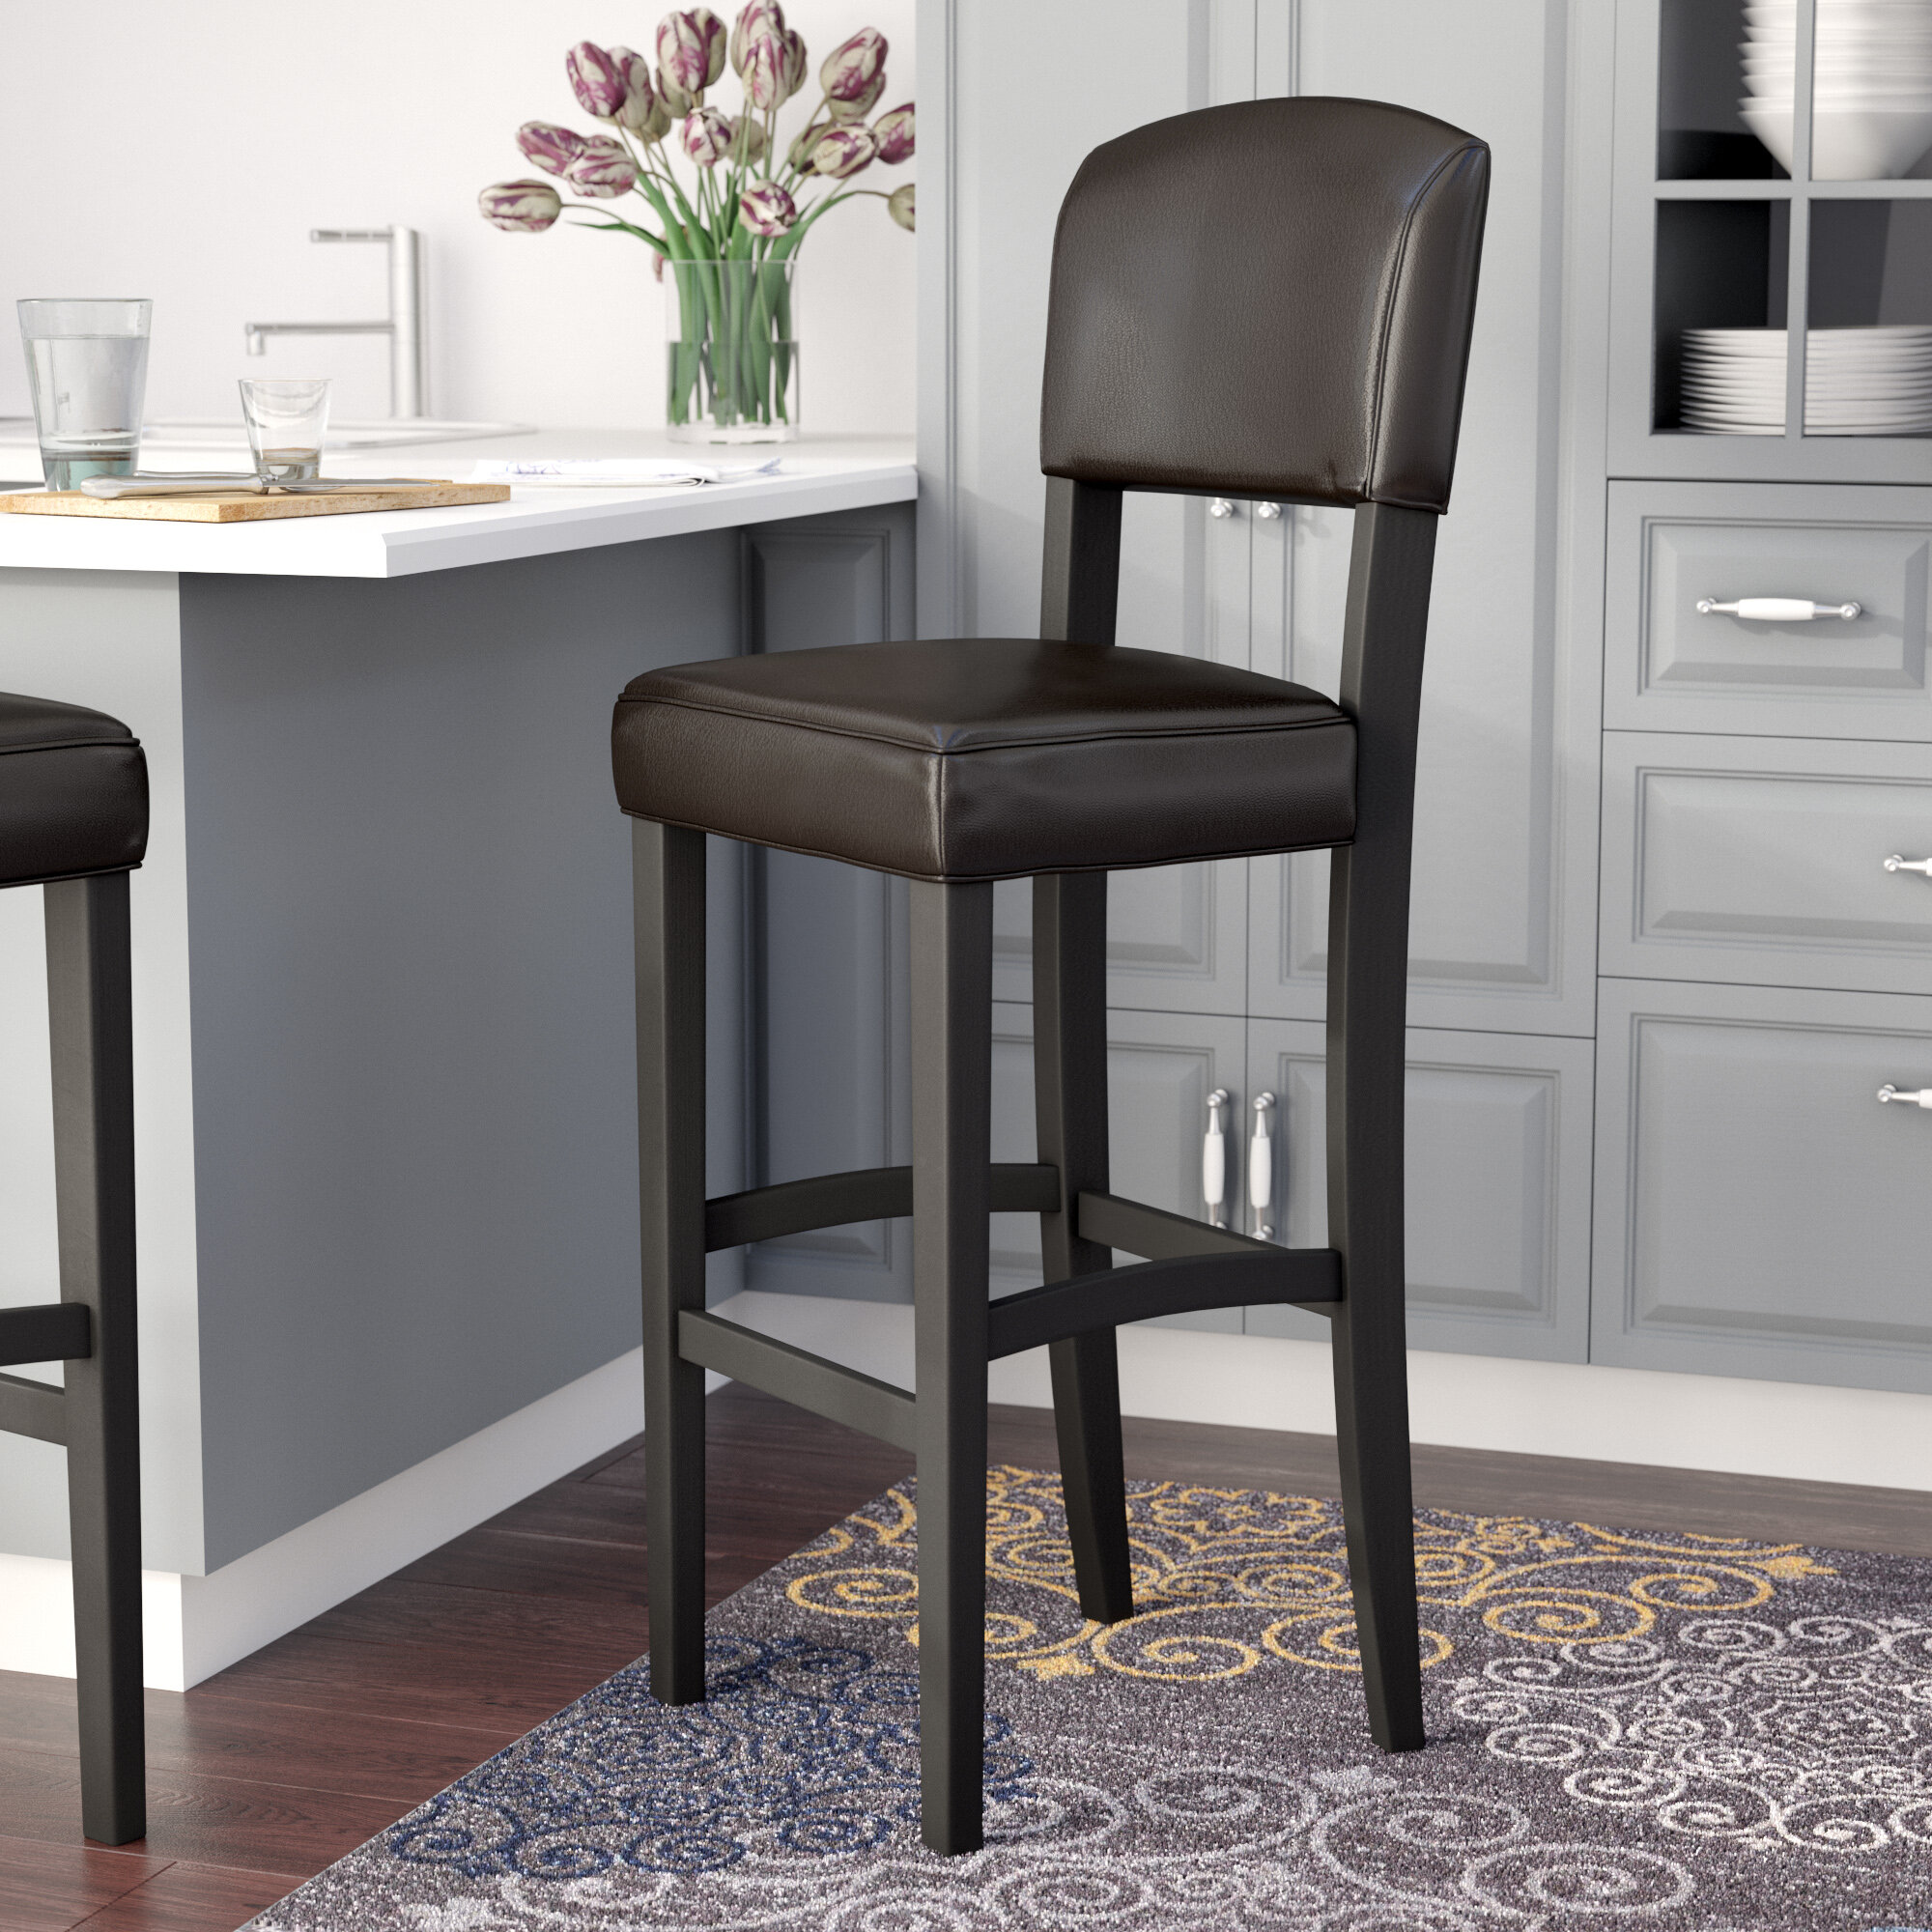 Swell Caldwell Bar Counter Stool Pabps2019 Chair Design Images Pabps2019Com